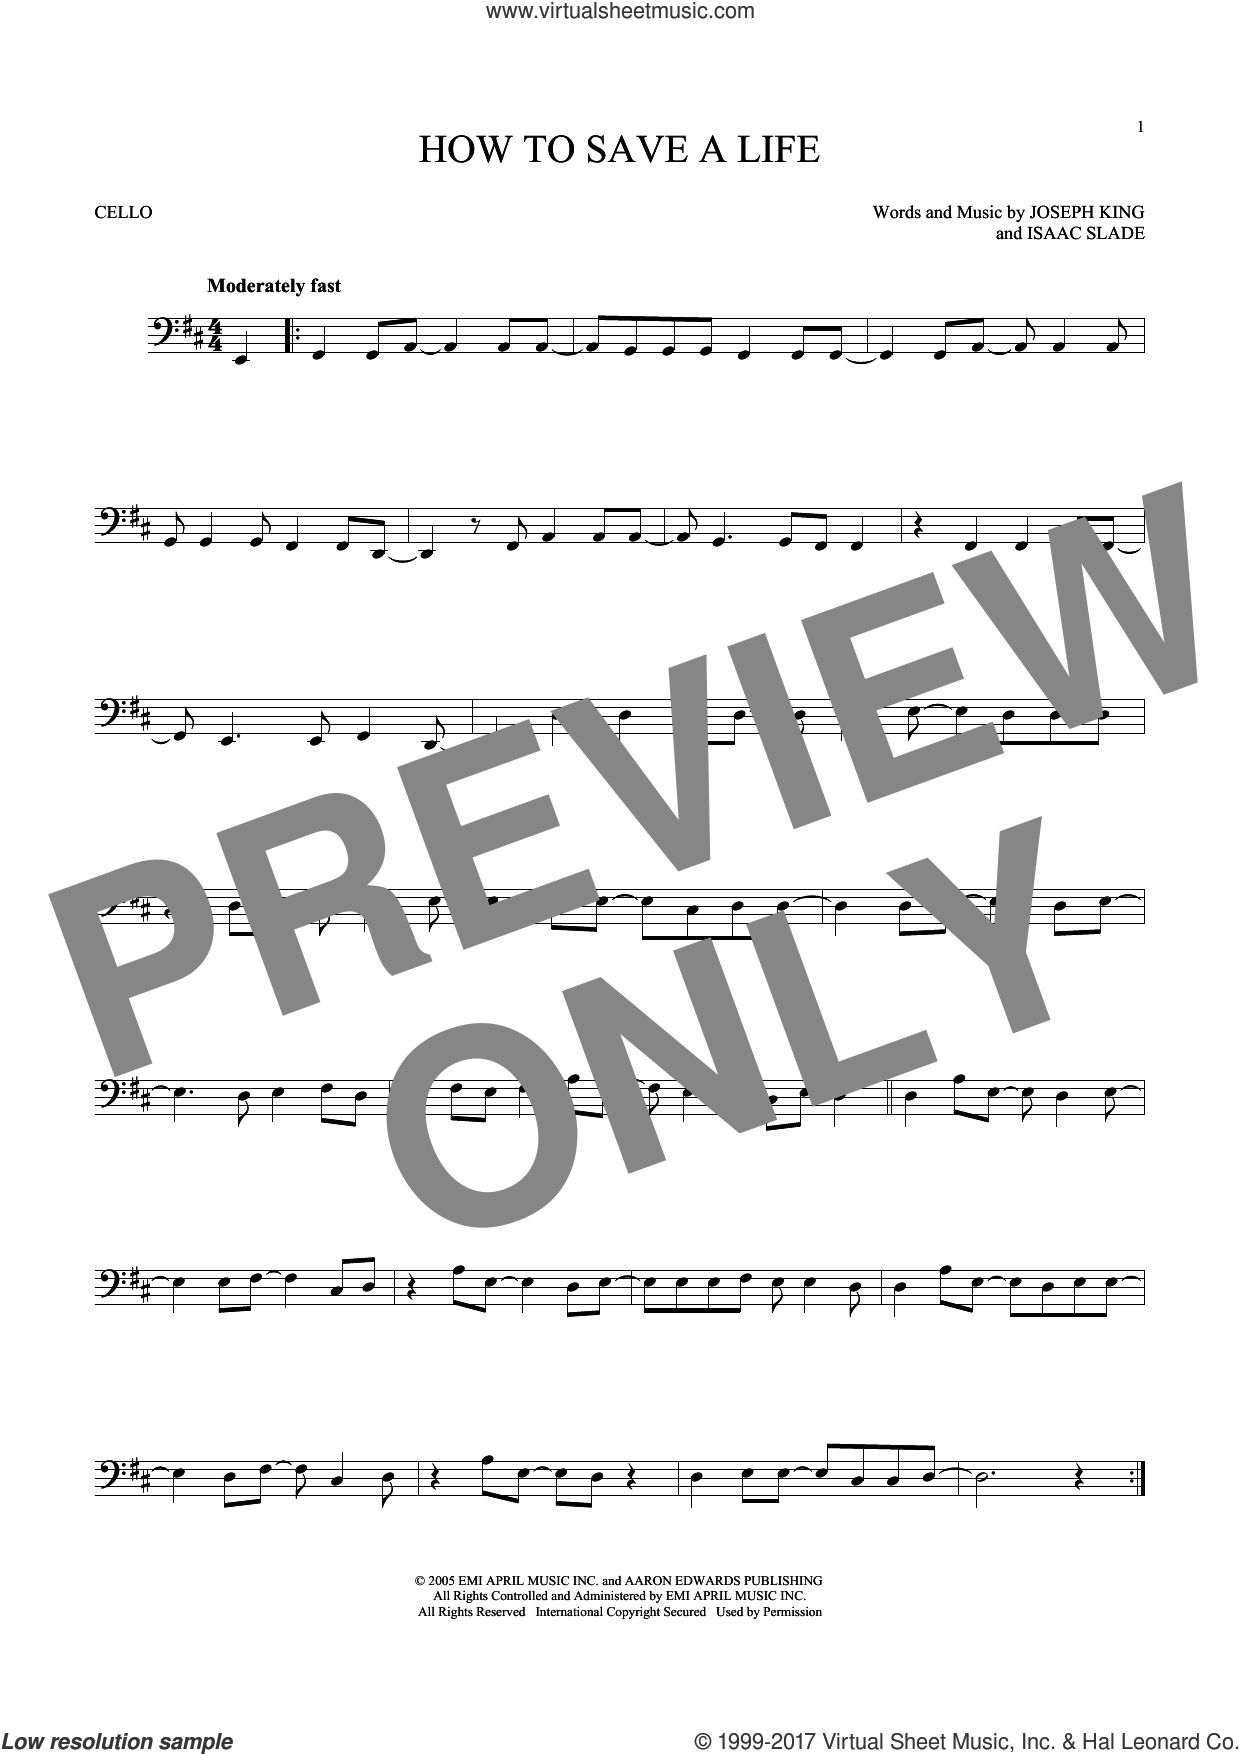 How To Save A Life sheet music for cello solo by Joseph King, The Fray and Isaac Slade. Score Image Preview.